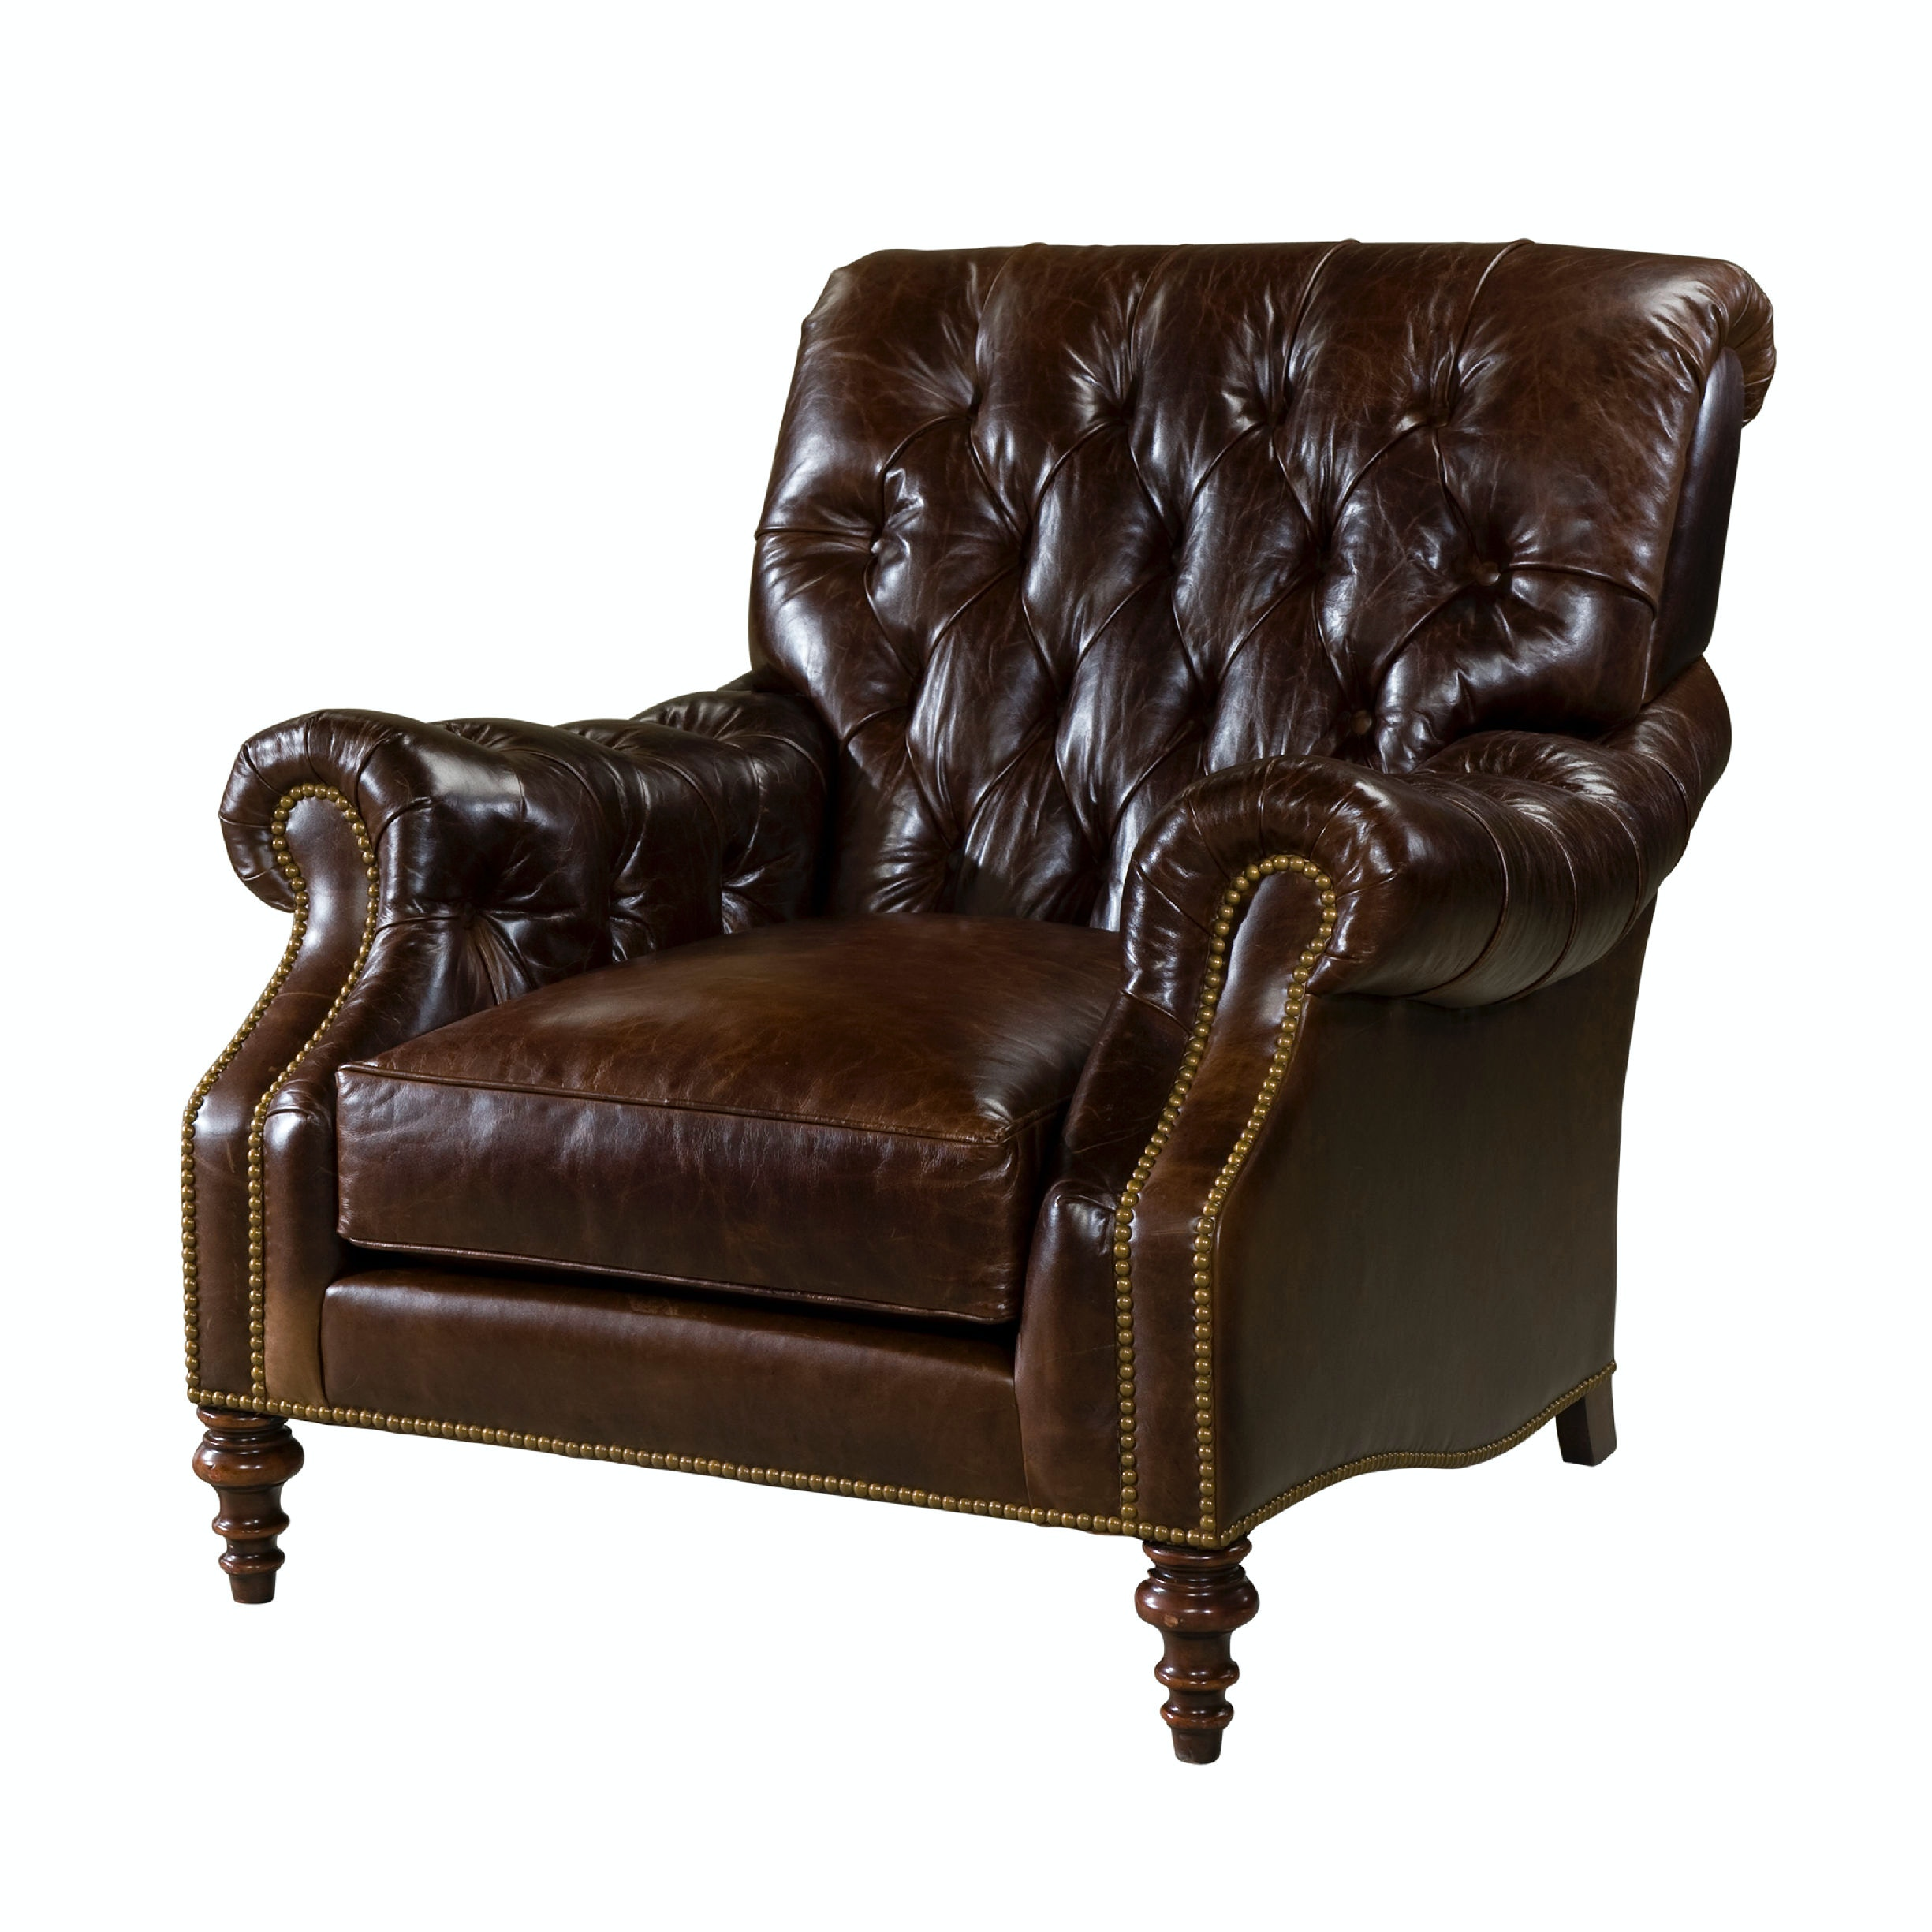 tufted leather sofa edmonton porter malibu chocolate brown sectional with ottoman theodore alexander living room bette upholstered chair